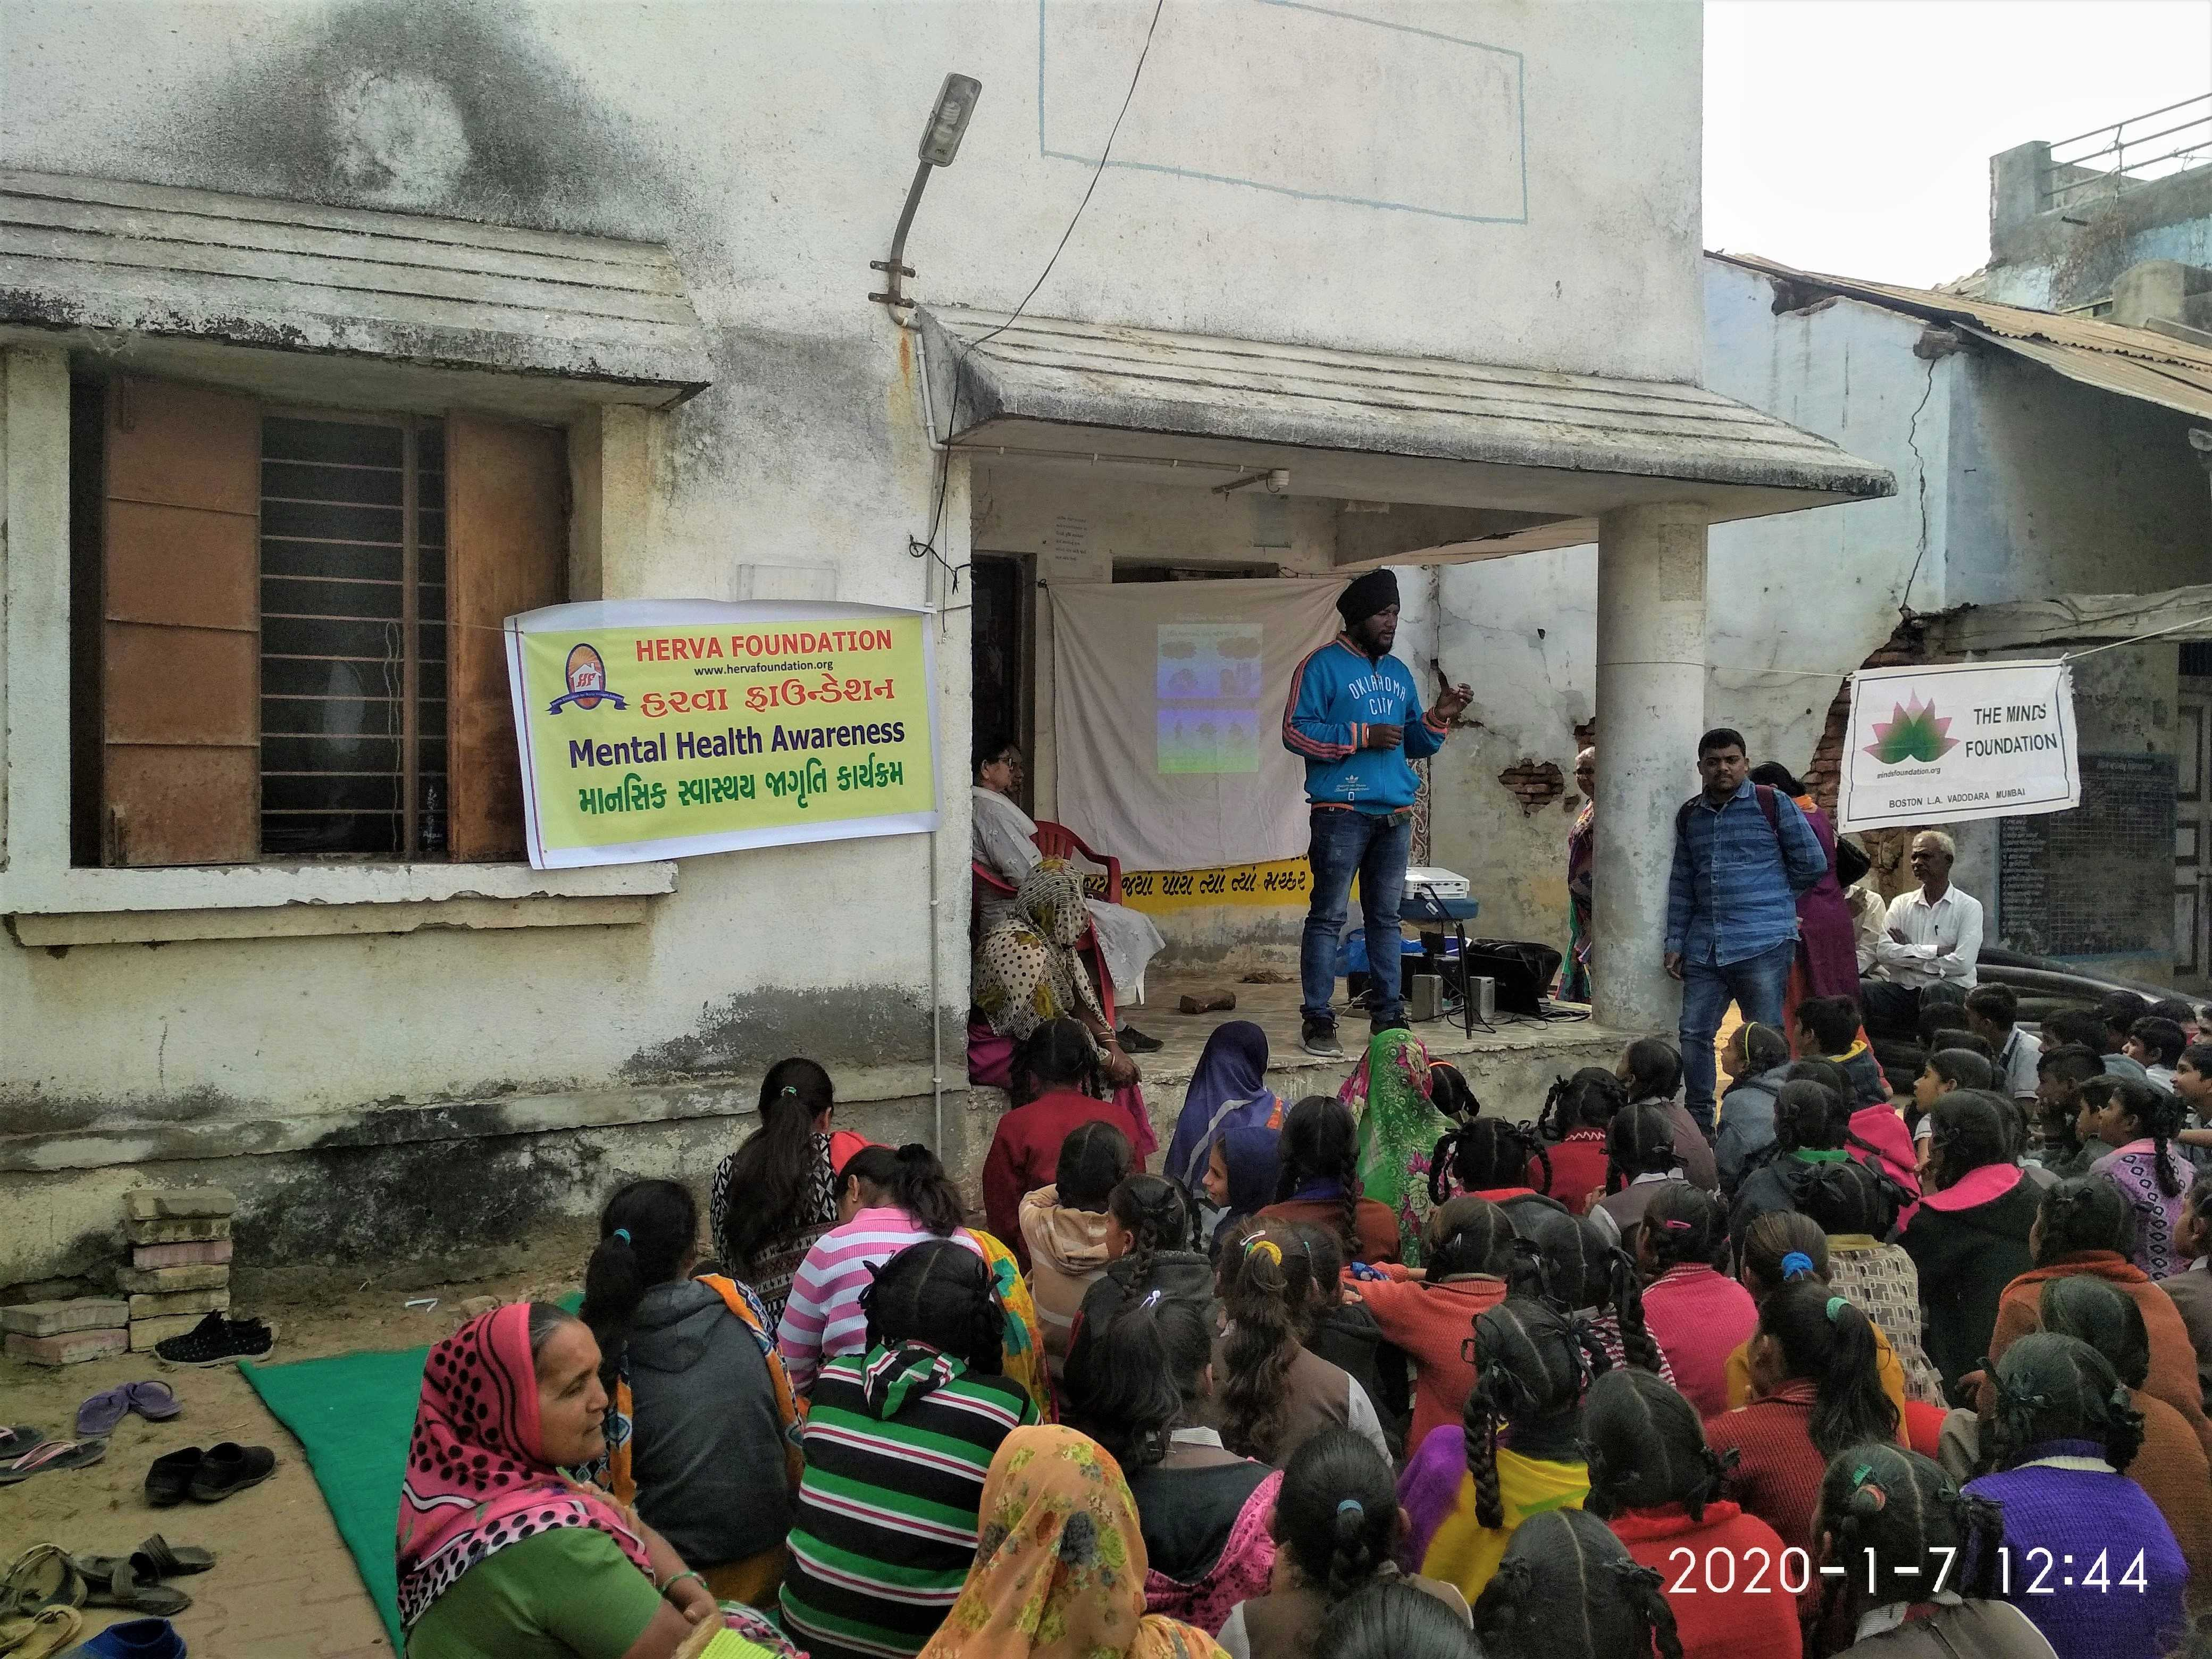 """MENTAL HEALTH AWARENESS CAMP AT VILLAGE KALOLI ON 7-1-20  A short film """" Tarang"""" in Gujarati on this subject was shown. Total 52 villagers (26 males and 26 female) along with 100 school students and 4 teachers attended. We were able to identify 4 male patients with mental health issues. 1 of them was already taking medicines so we did counselling to continue the medication. Other 3 patients had issues such as anxiety, involuntary muscle movements and sign of depression respectively."""